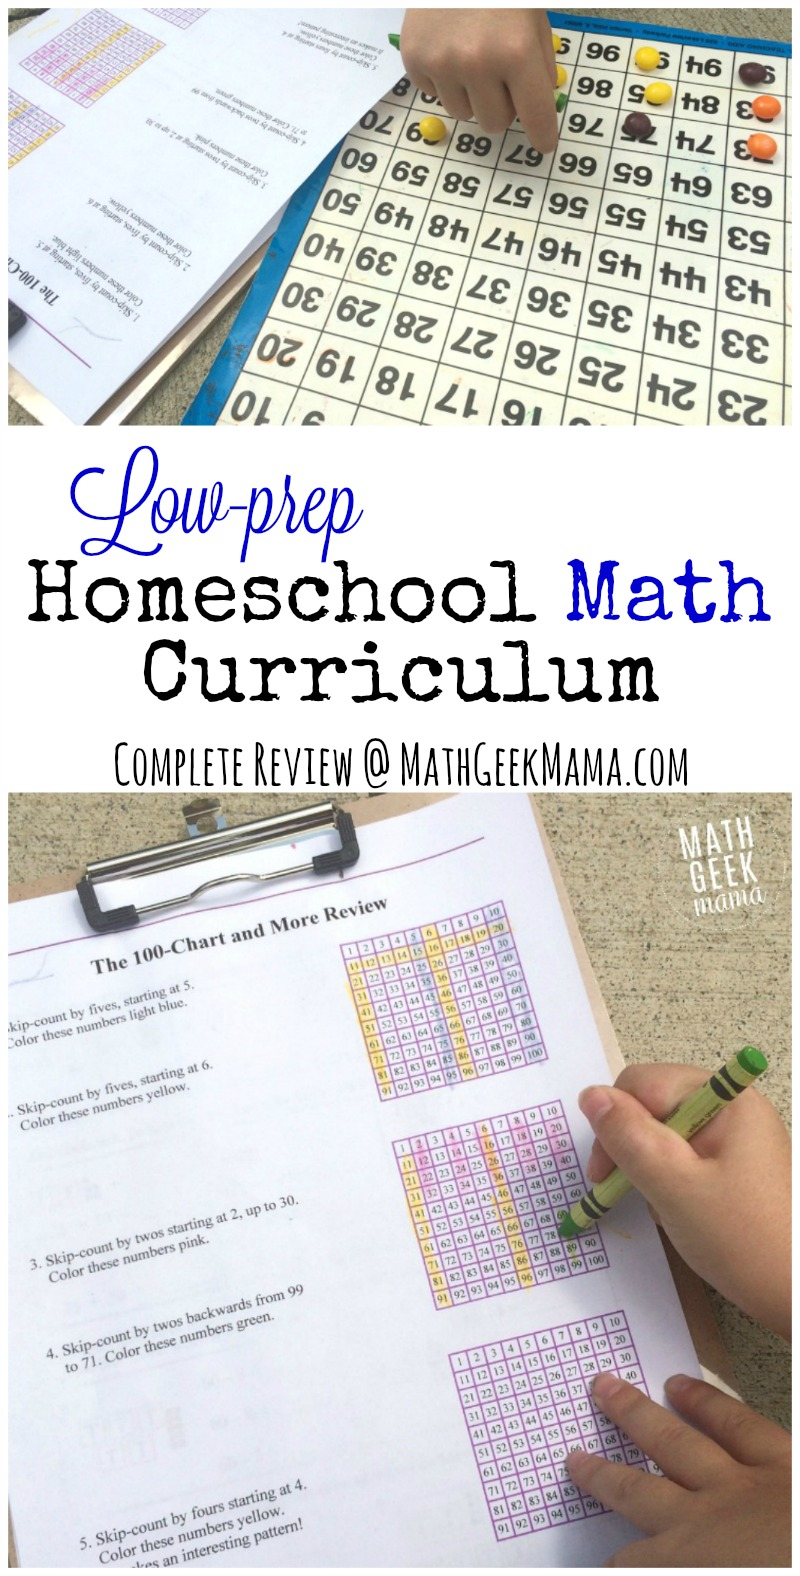 Looking for a homeschool math curriculum that is easy to implement, yet teaches math in a conceptual way? Read this complete review of Math Mammoth to learn why this might be a good homeschool math option for your family!